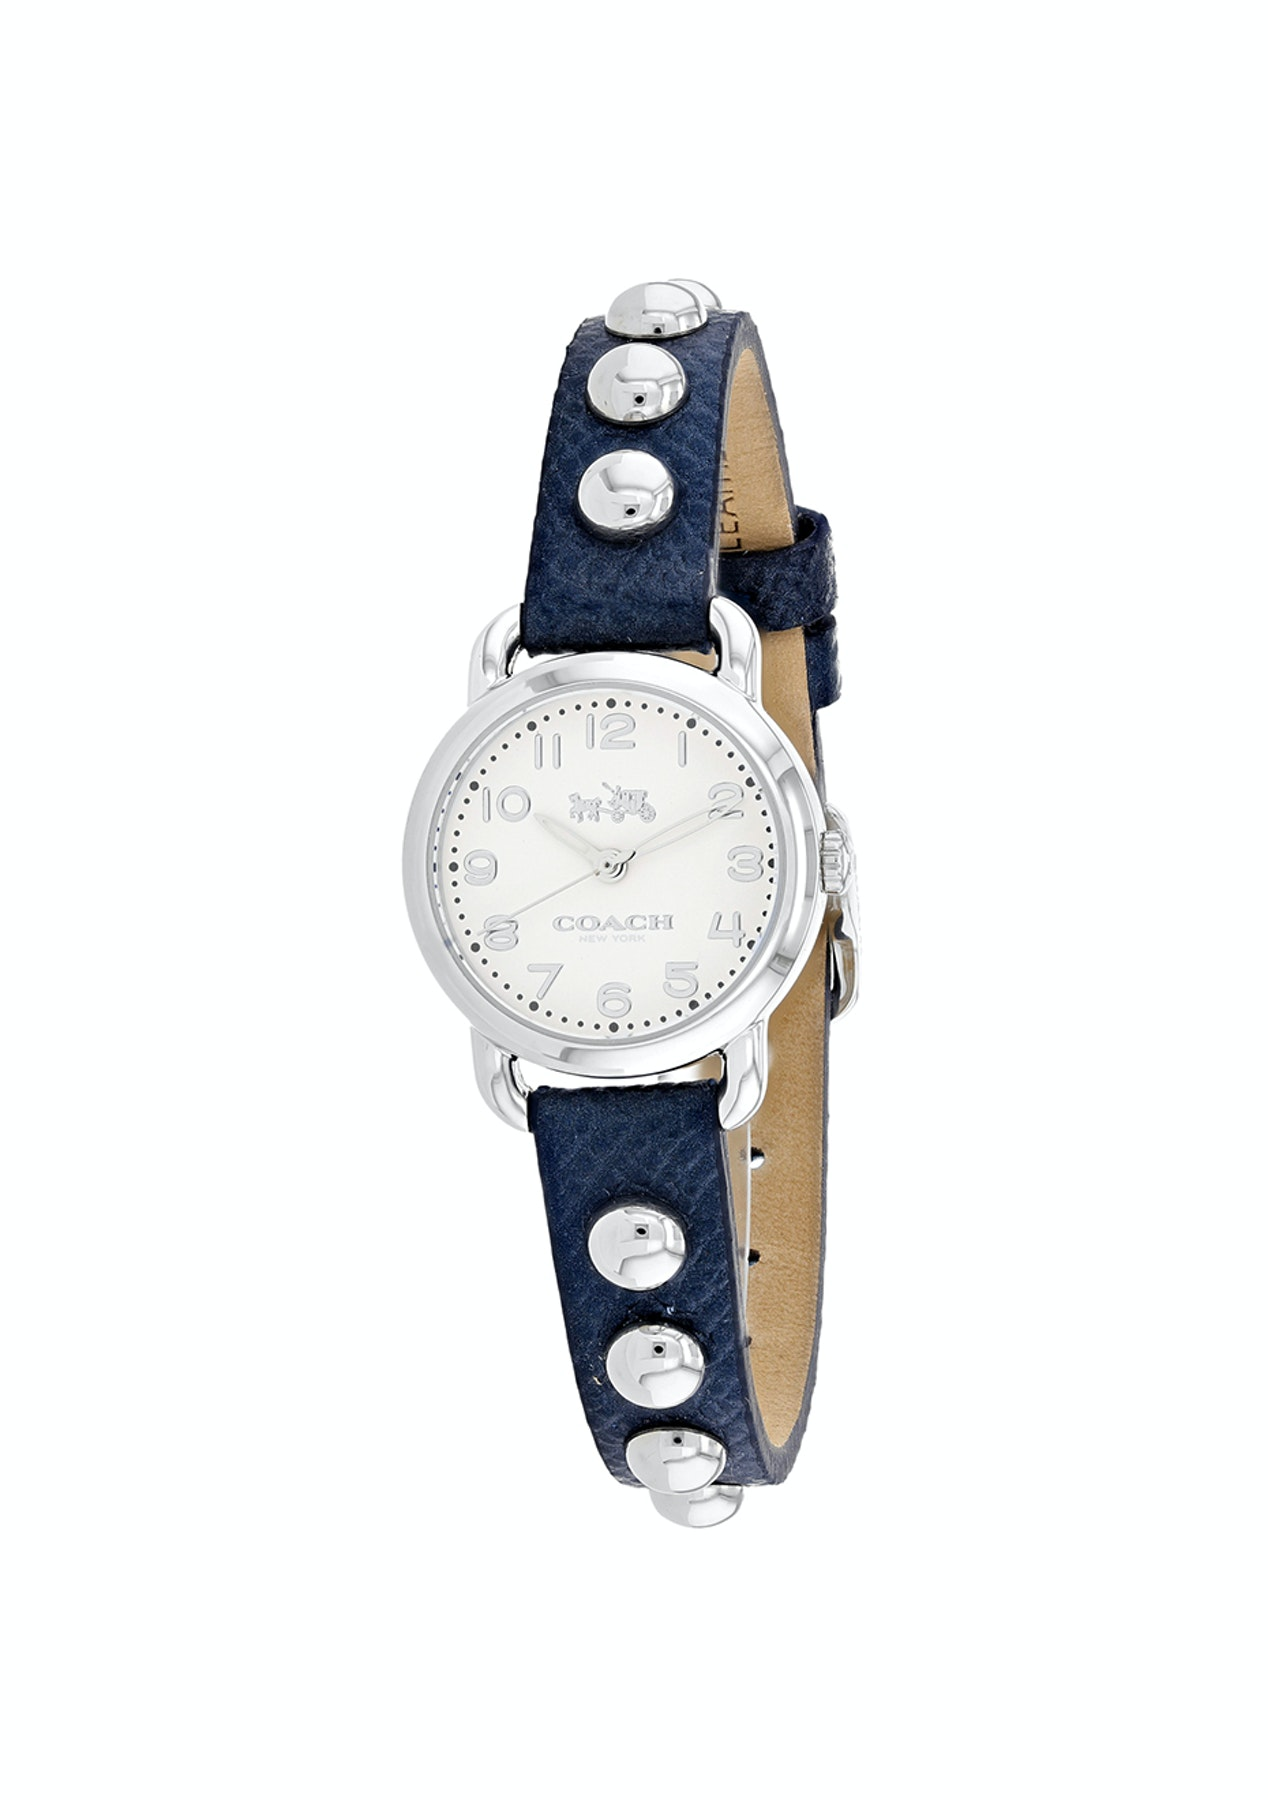 6c6d6aab735d Coach Women s Delancey - Silver - Big Brand Watches from  89.95 - Onceit